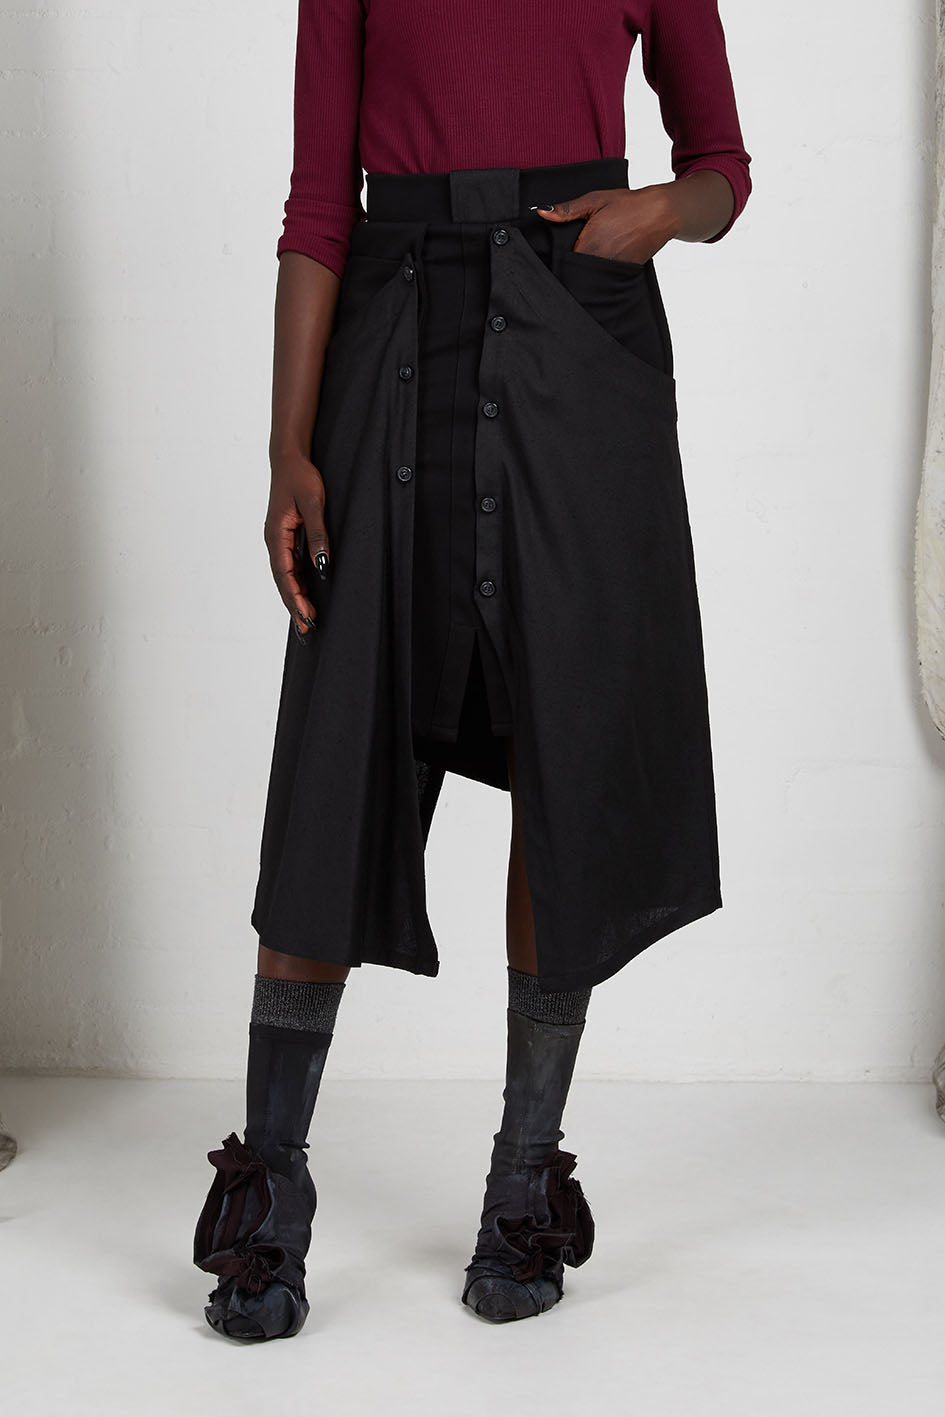 Black Unisex Layered Skirt with Button Off Drape panels